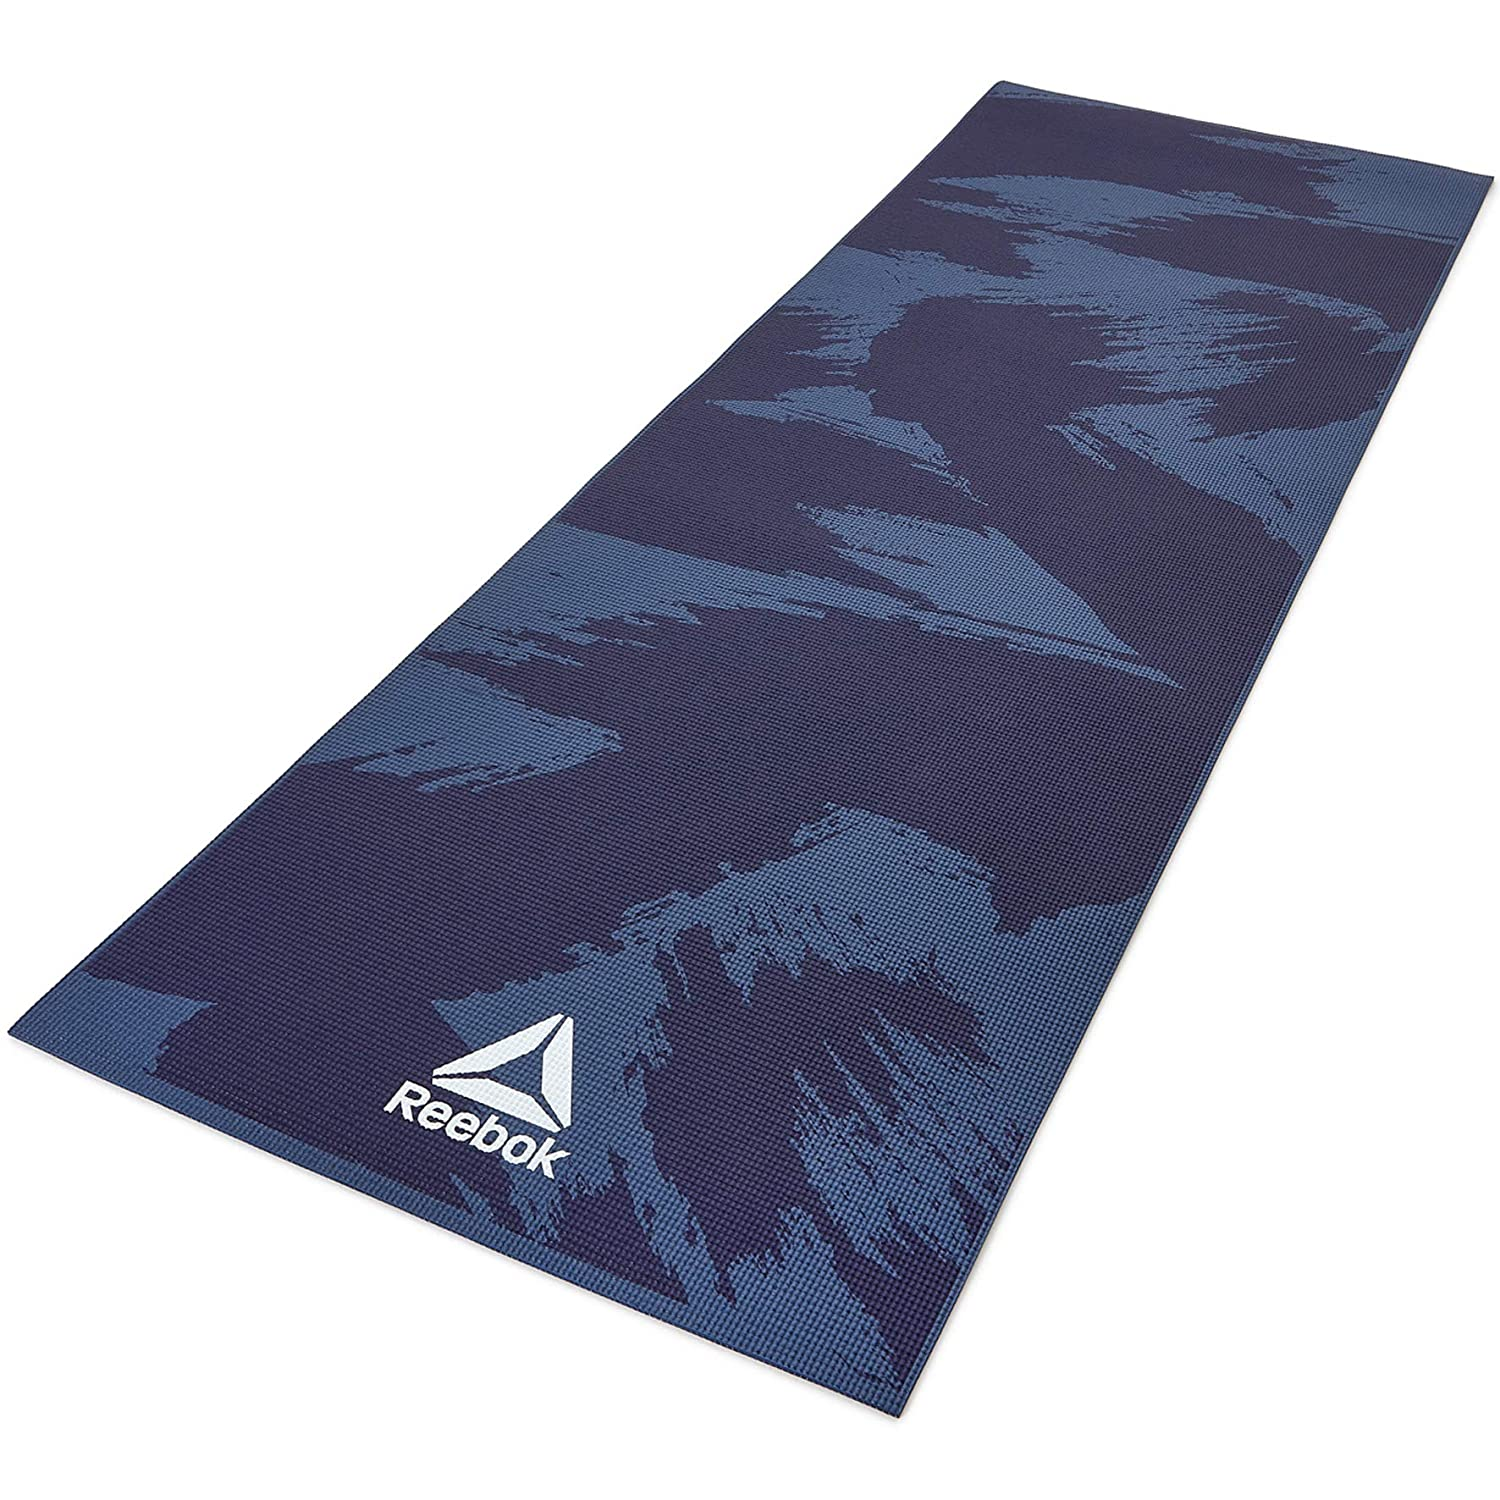 Reebok Brush Strokes Yoga Mat